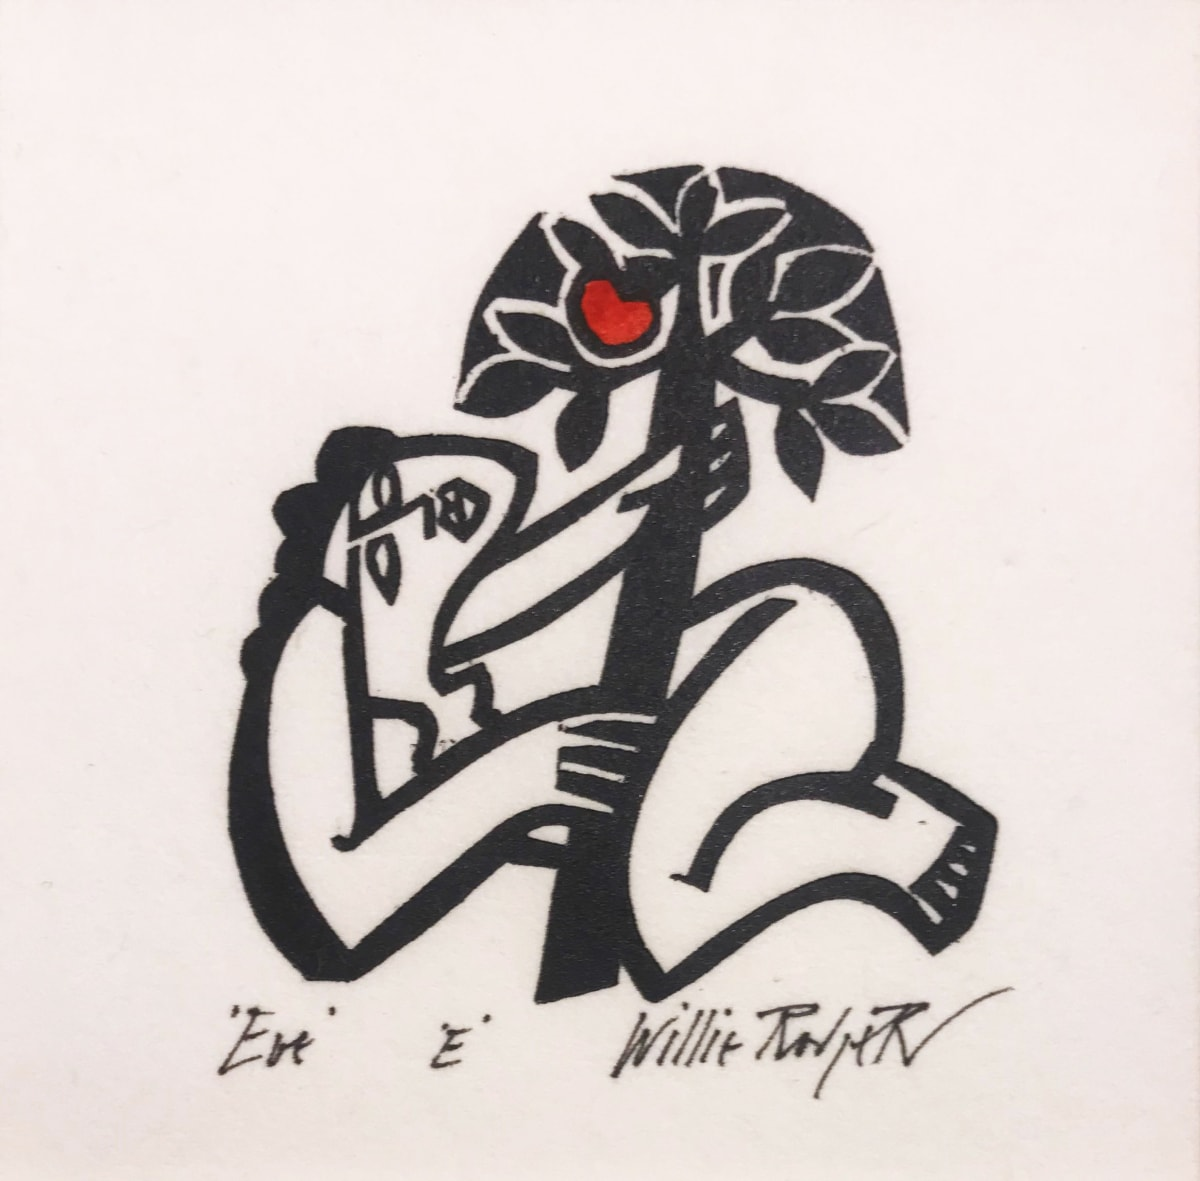 Willie Rodger RSA Eve, 1995 Linocut on paper 7 x 6.5 cm Edition of 100 plus 4 artist's proofs